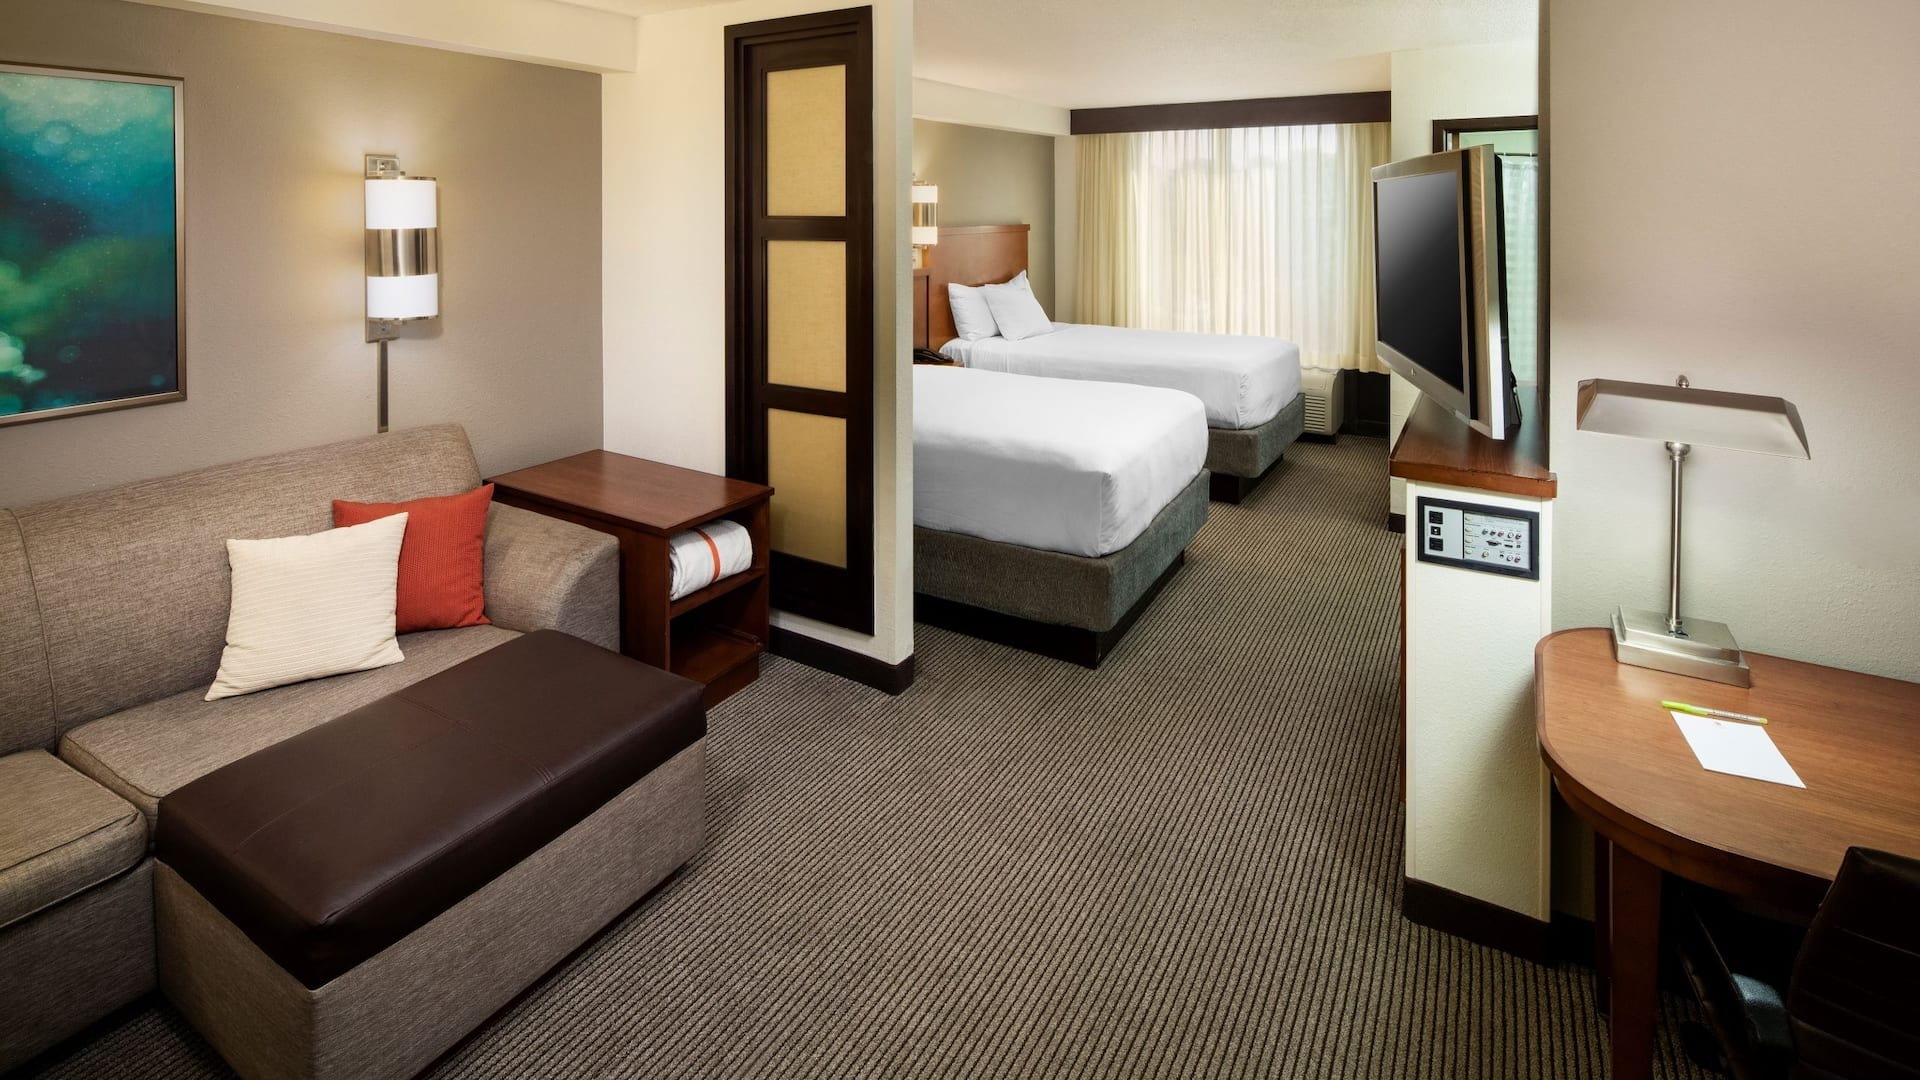 Hyatt-Place-Charlotte-Arrowood-P014-Double-Room